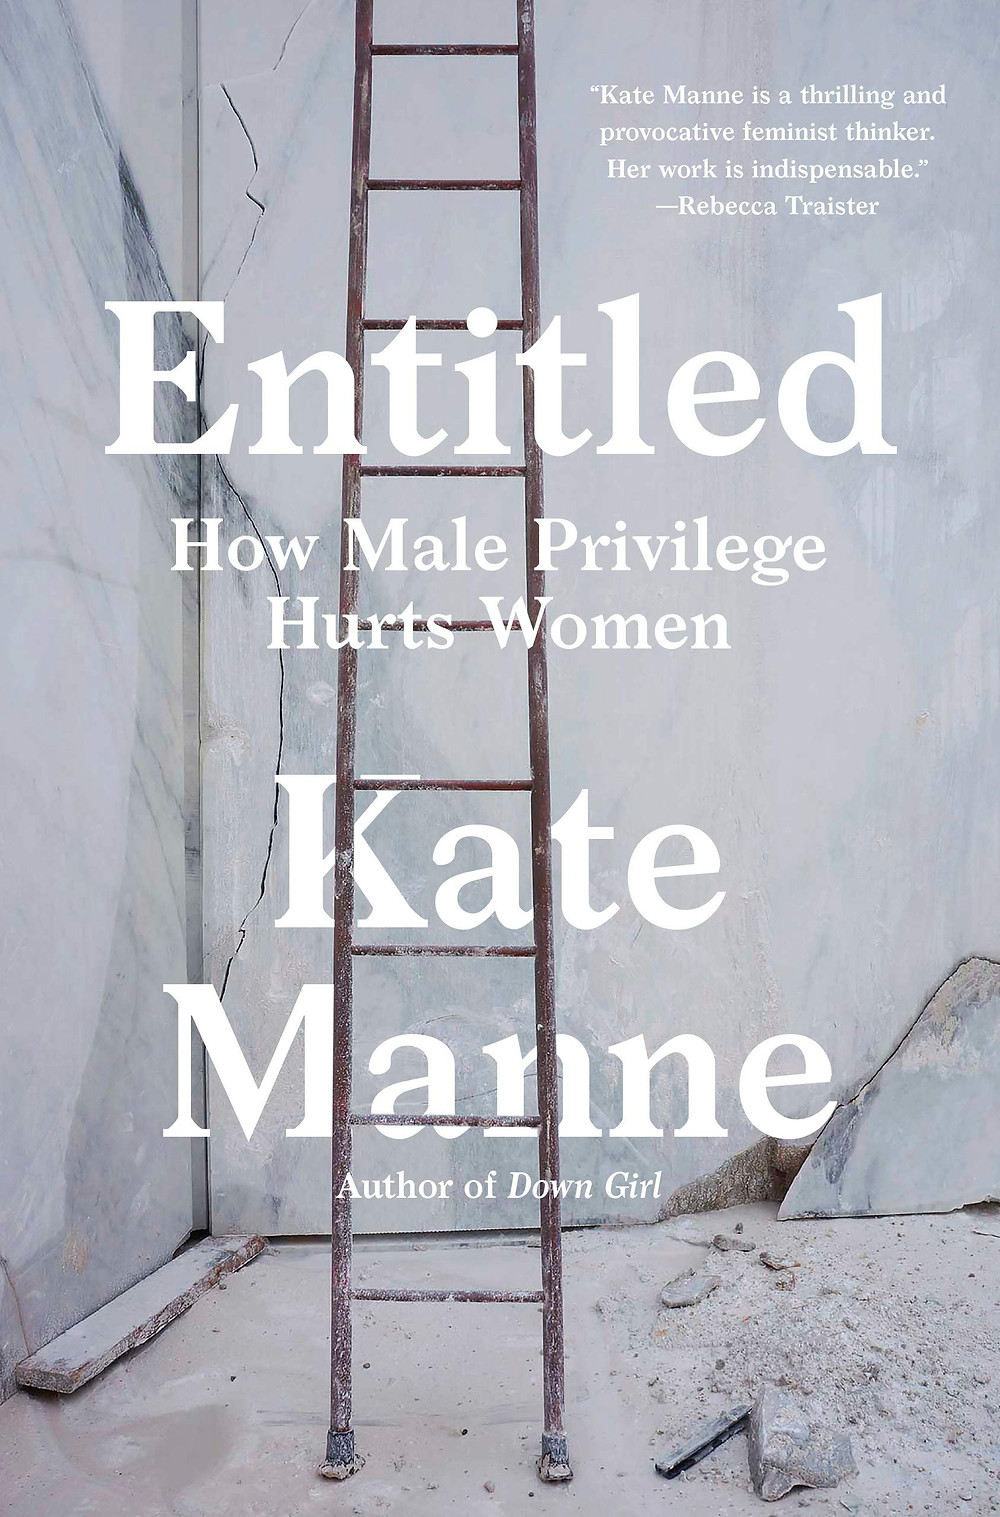 "Entitled: How Male Privilege Hurts Women Kate Manne (Author) The Book Slut book reviews, Friday debrief, Description An urgent exploration of men's entitlement and how it serves to police and punish women, from the acclaimed author of Down Girl  ""Kate Manne is a thrilling and provocative feminist thinker. Her work is indispensable.""--Rebecca Traister In this bold and stylish critique, Cornell philosopher Kate Manne offers a radical new framework for understanding misogyny. Ranging widely across the culture, from Harvey Weinstein and the Brett Kavanaugh hearings to ""Cat Person"" and the political misfortunes of Elizabeth Warren, Manne's book shows how privileged men's sense of entitlement--to sex, yes, but more insidiously to admiration, care, bodily autonomy, knowledge, and power--is a pervasive social problem with often devastating consequences. In clear, lucid prose, Manne argues that male entitlement can explain a wide array of phenomena, from mansplaining and the undertreatment of women's pain to mass shootings by incels and the seemingly intractable notion that women are ""unelectable."" Moreover, Manne implicates each of us in toxic masculinity: It's not just a product of a few bad actors; it's something we all perpetuate, conditioned as we are by the social and cultural mores of our time. The only way to combat it, she says, is to expose the flaws in our default modes of thought while enabling women to take up space, say their piece, and muster resistance to the entitled attitudes of the men around them. With wit and intellectual fierceness, Manne sheds new light on gender and power and offers a vision of a world in which women are just as entitled as men to our collective care and concern. thebookslut.com, bookslut, Publisher Crown Publishing Group (NY) Publish Date August 11, 2020 Pages 288 Dimensions 5.7 X 1.1 X 7.7 inches 